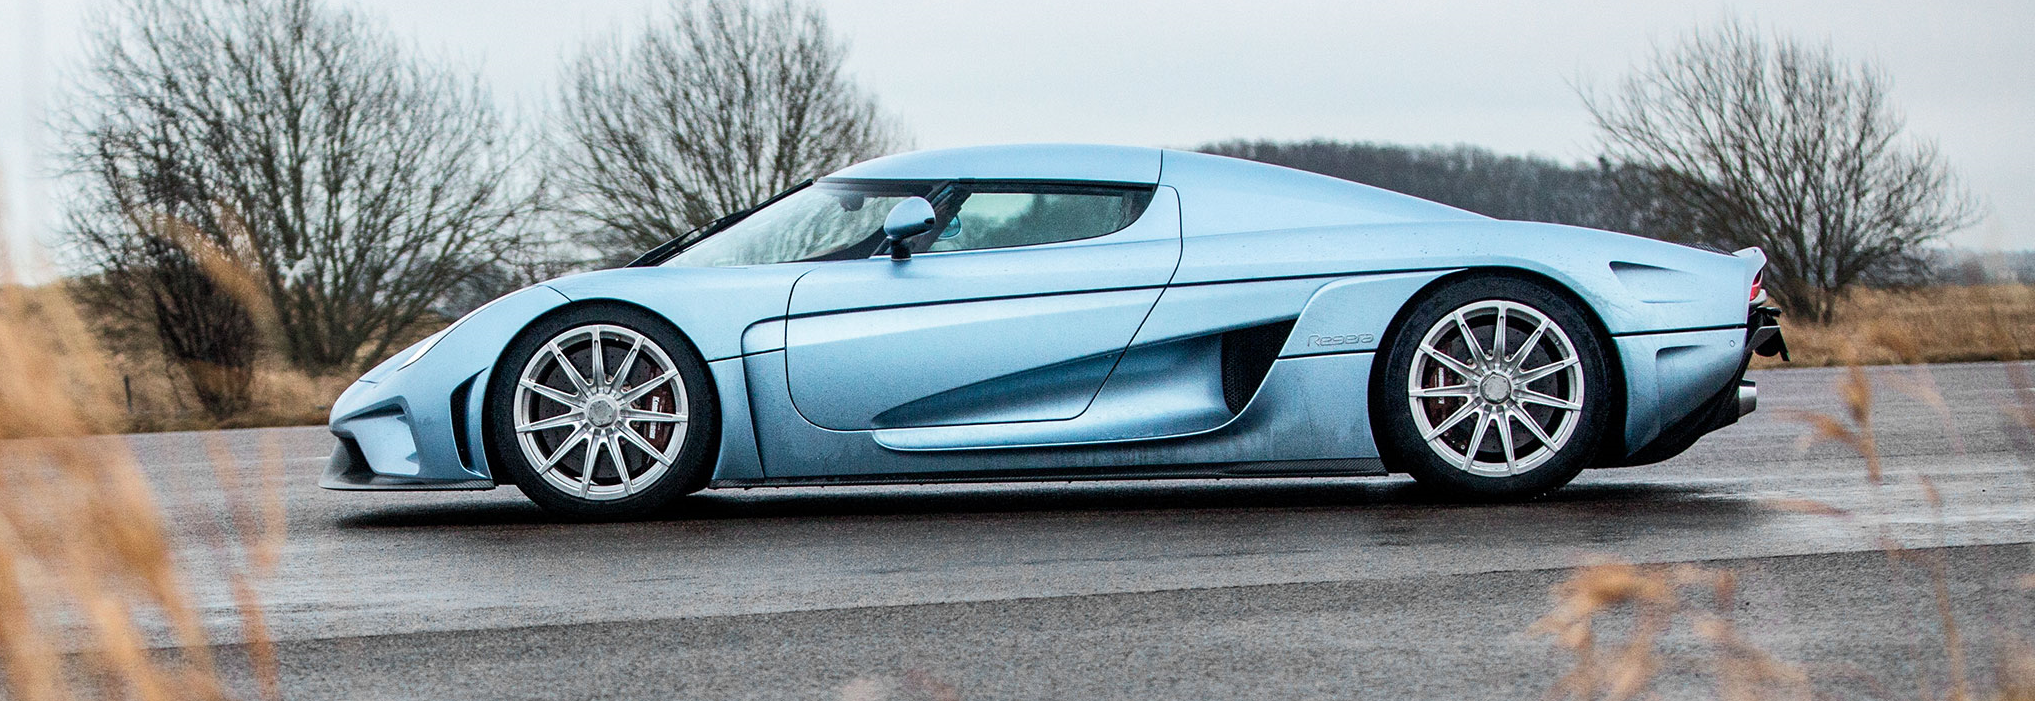 Say hello to the fastest and most powerful production car ever produced.